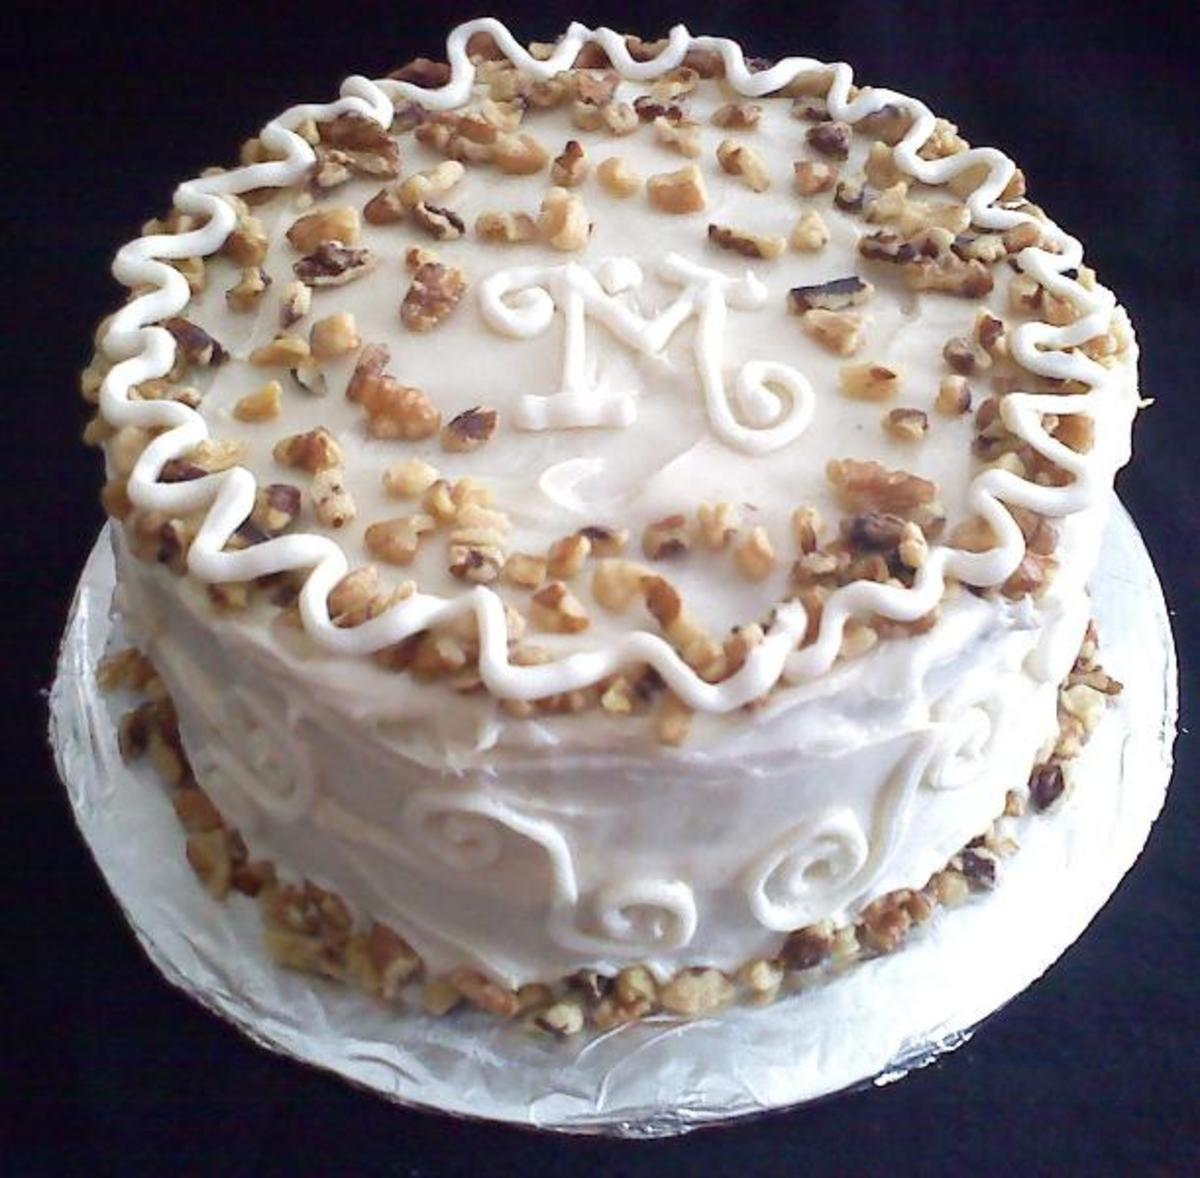 carrot-cake-with-caramel-glaze-and-cream-cheese-frosting